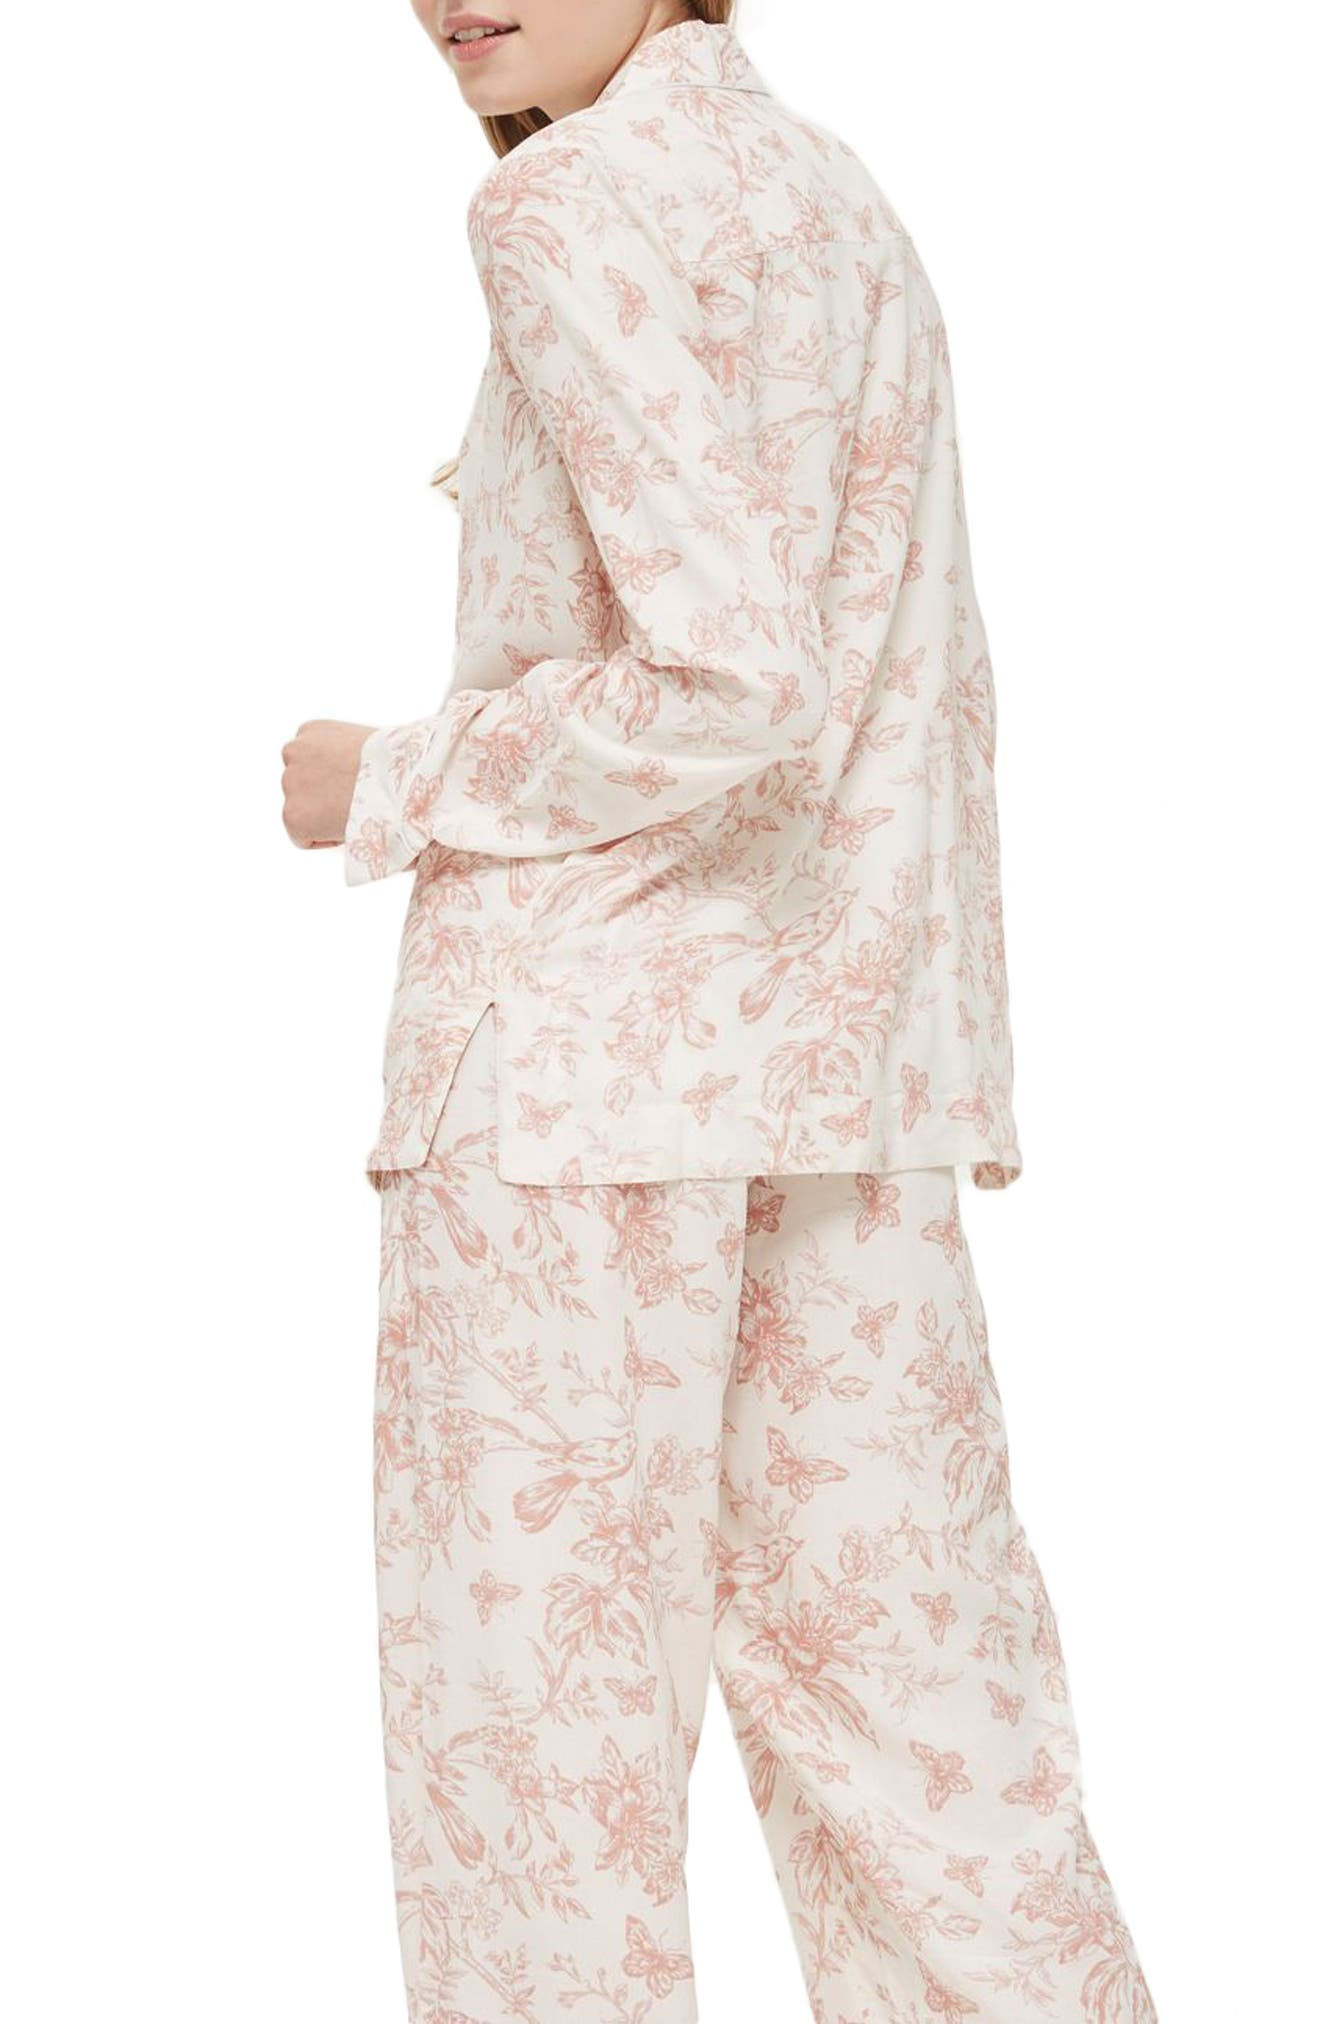 French Floral Pajamas,                             Alternate thumbnail 2, color,                             Light Pink Multi